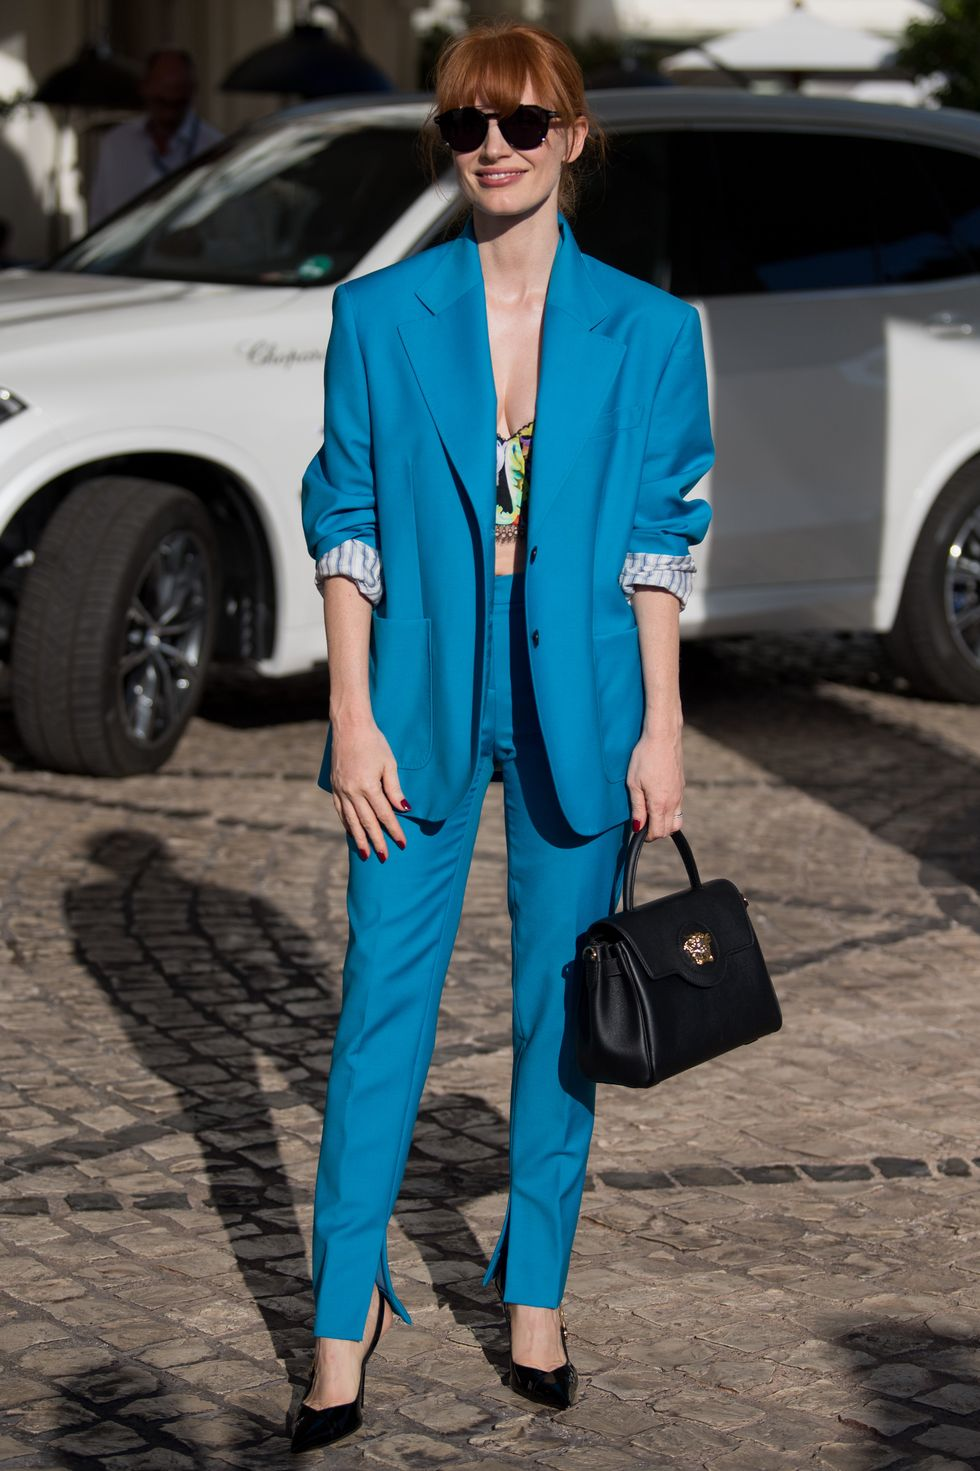 jessica-chastain-arriving-nice-airport-for-cannes-festival-2021-wearing-an-aqua-blue-suit